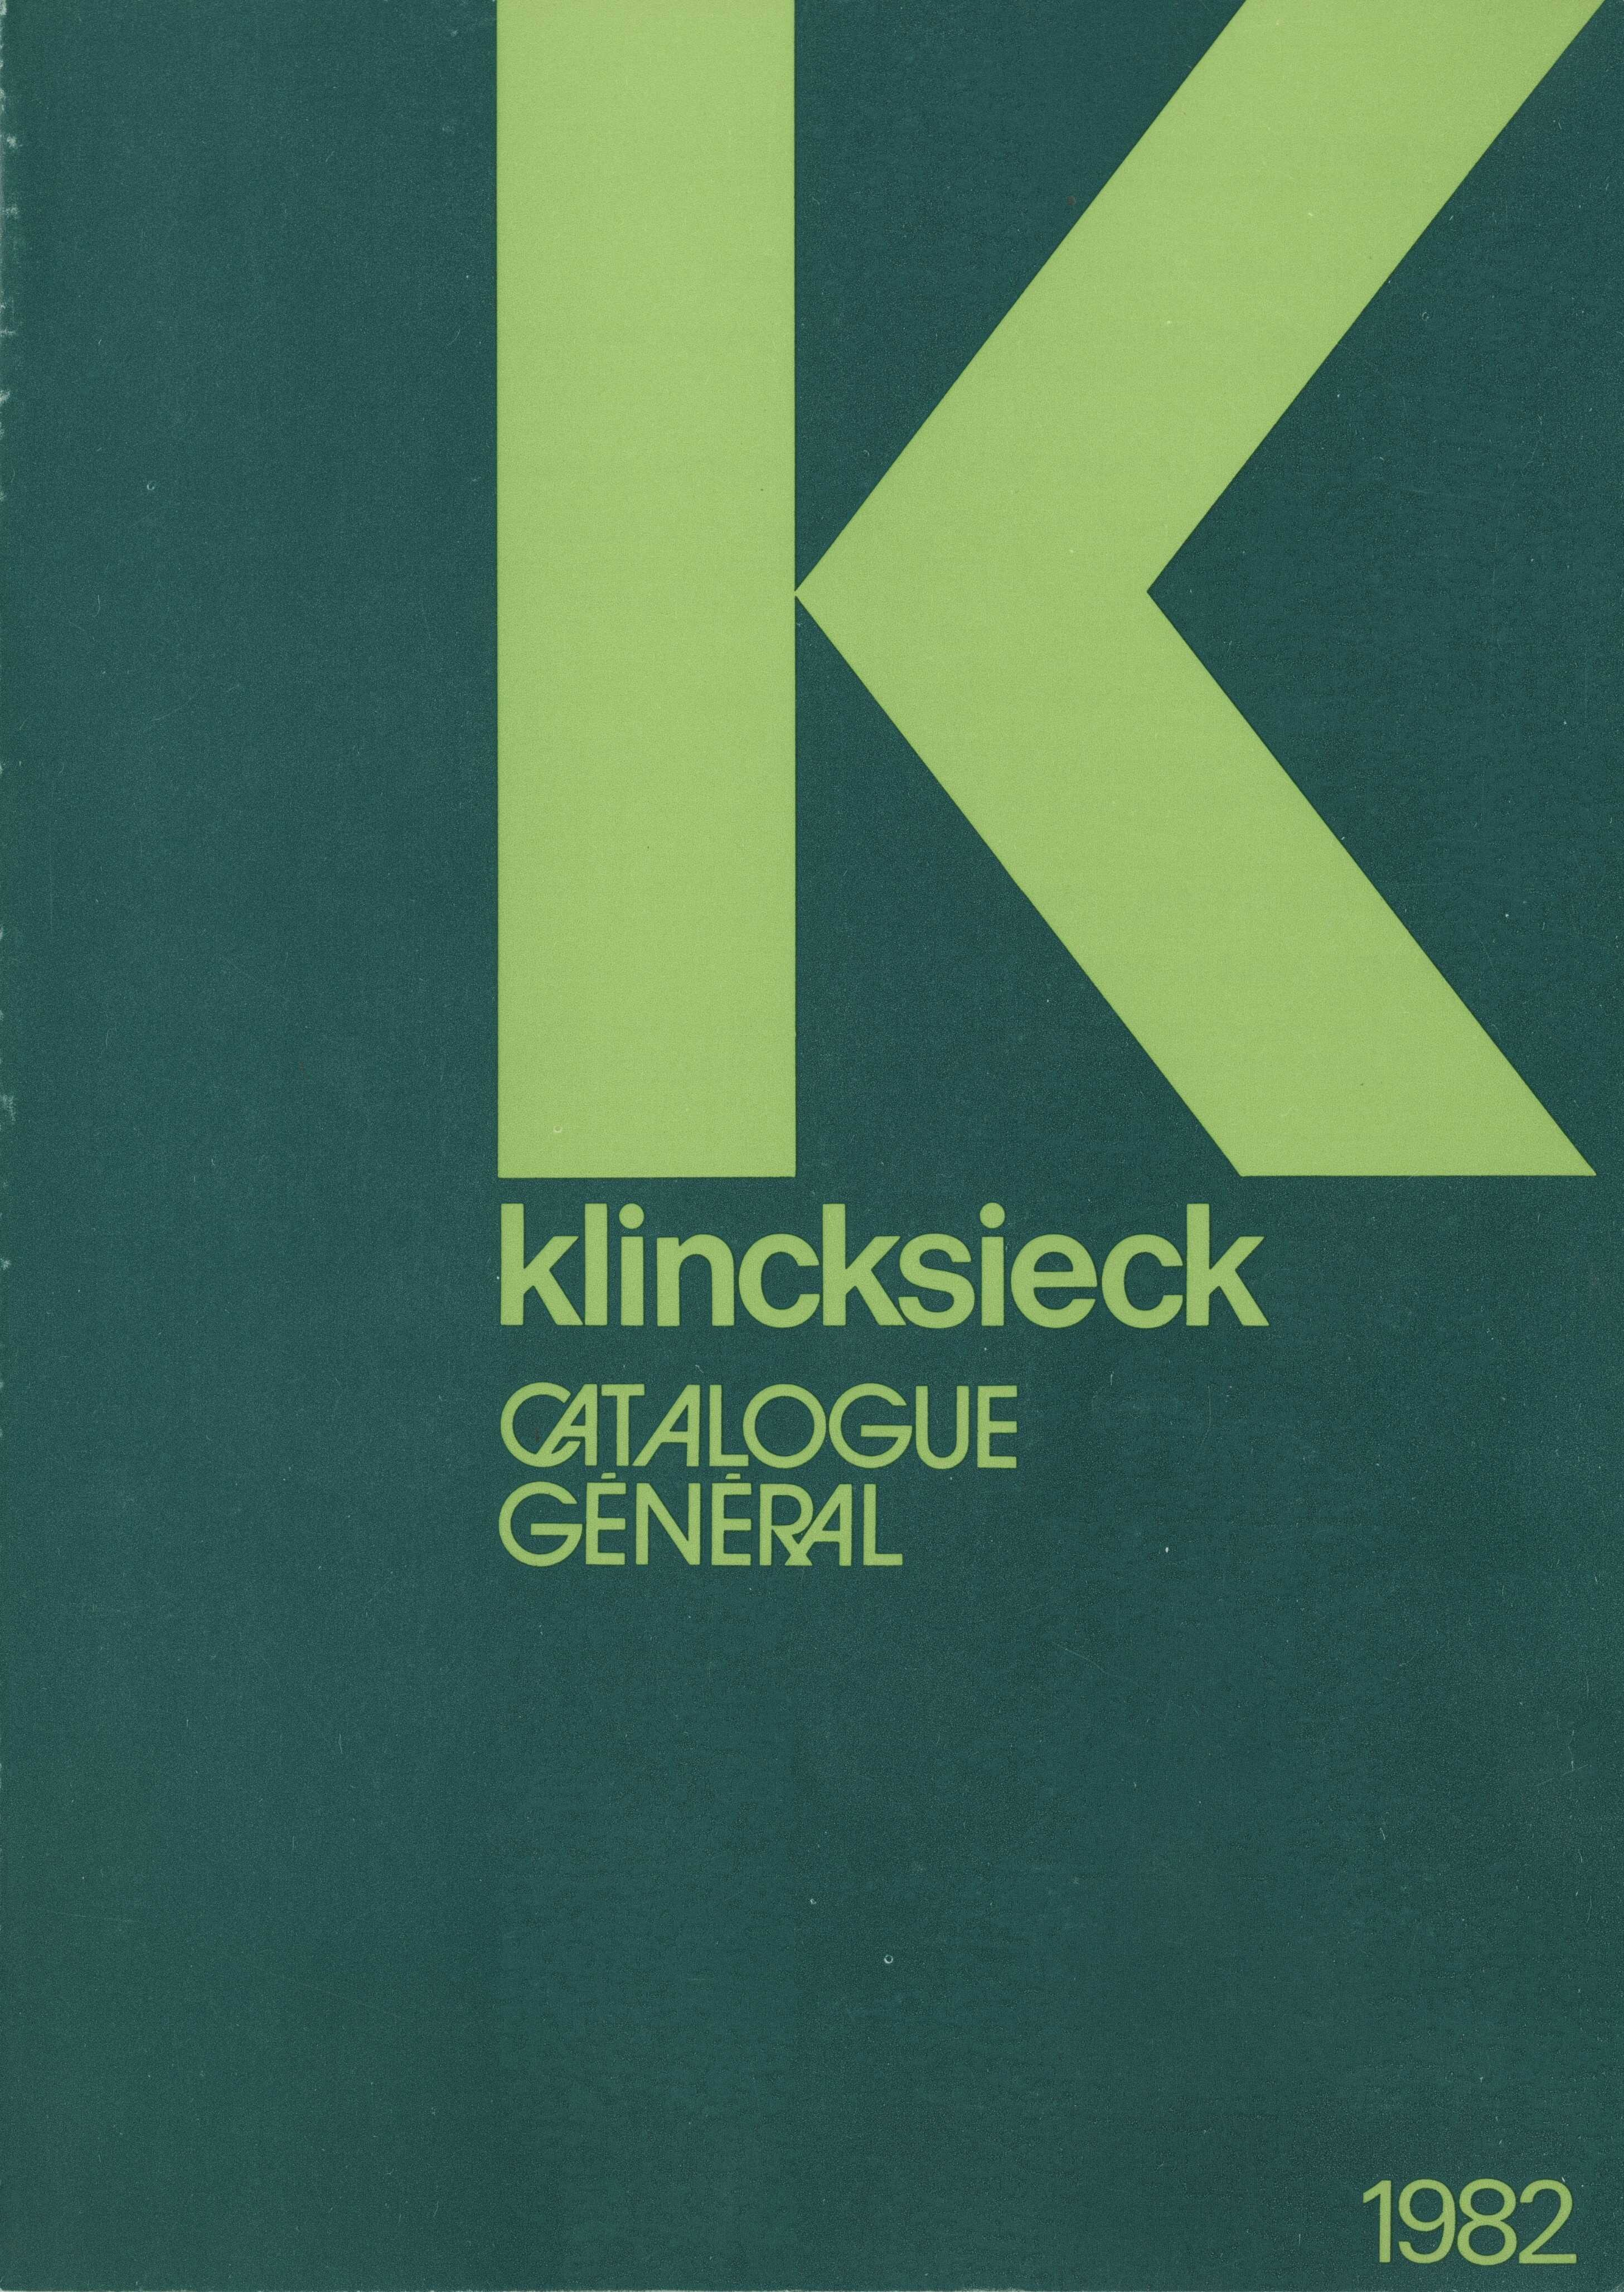 image for Klincksieck